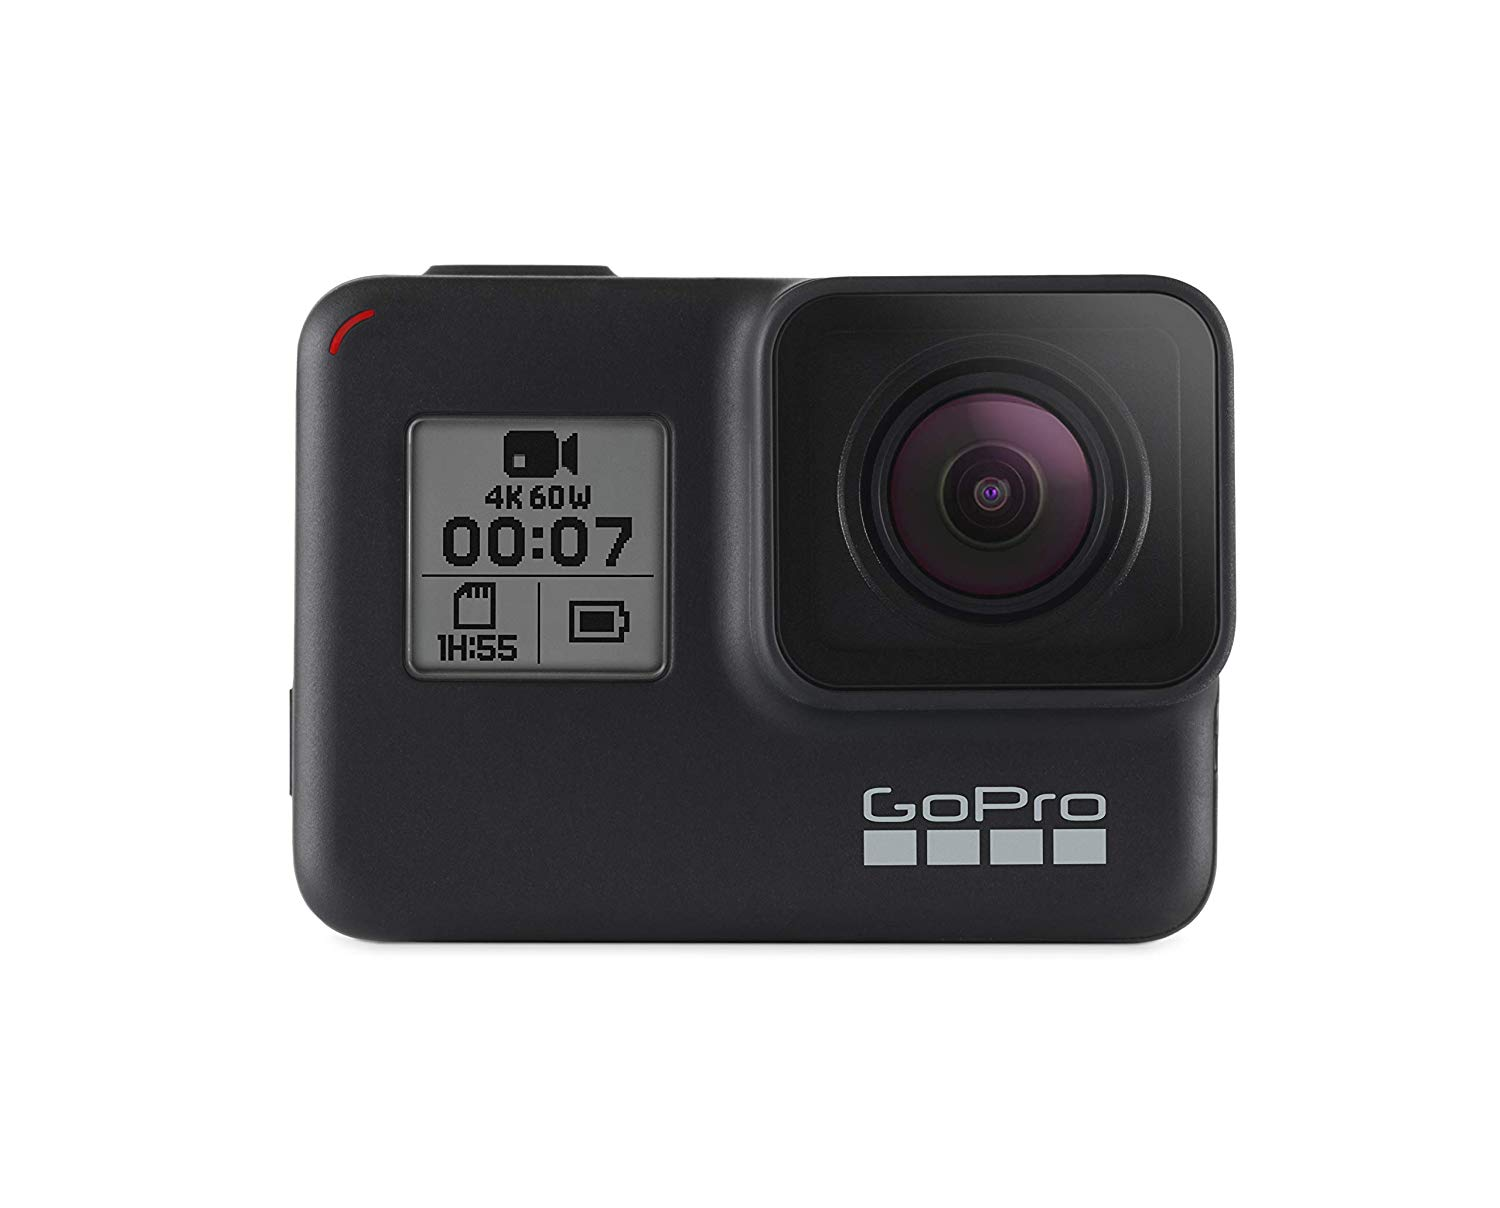 GoPro Hero Black: GoPro HERO7 Black — Waterproof Digital Action Camera with Touch Screen 4K HD Video 12MP Photos Live Streaming Stabilization